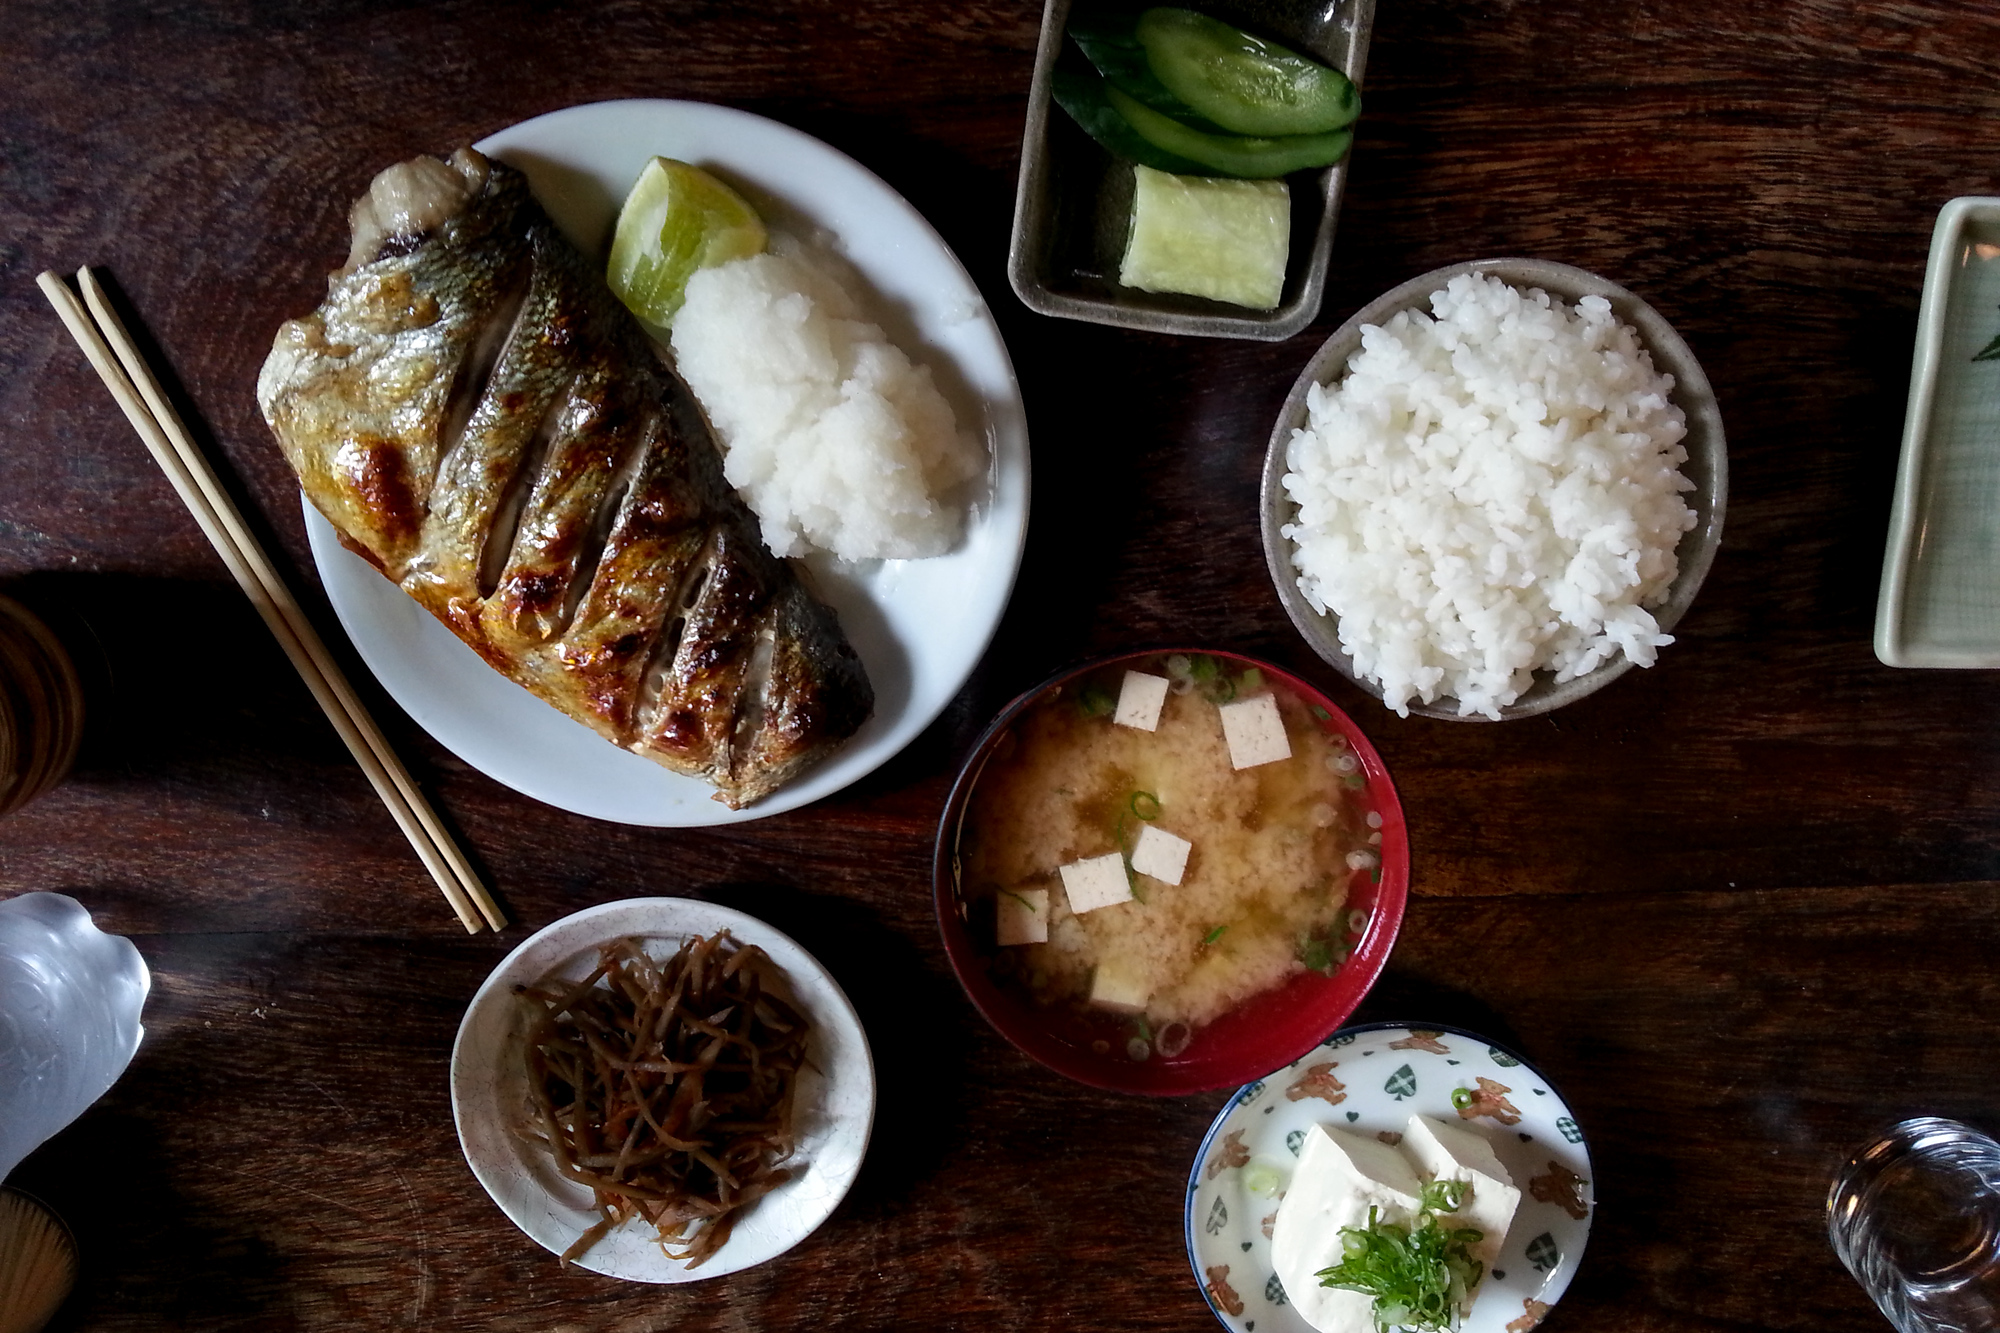 Some of the best Japanese food is in Brazil, discover how it influences Brazilian cuisine.